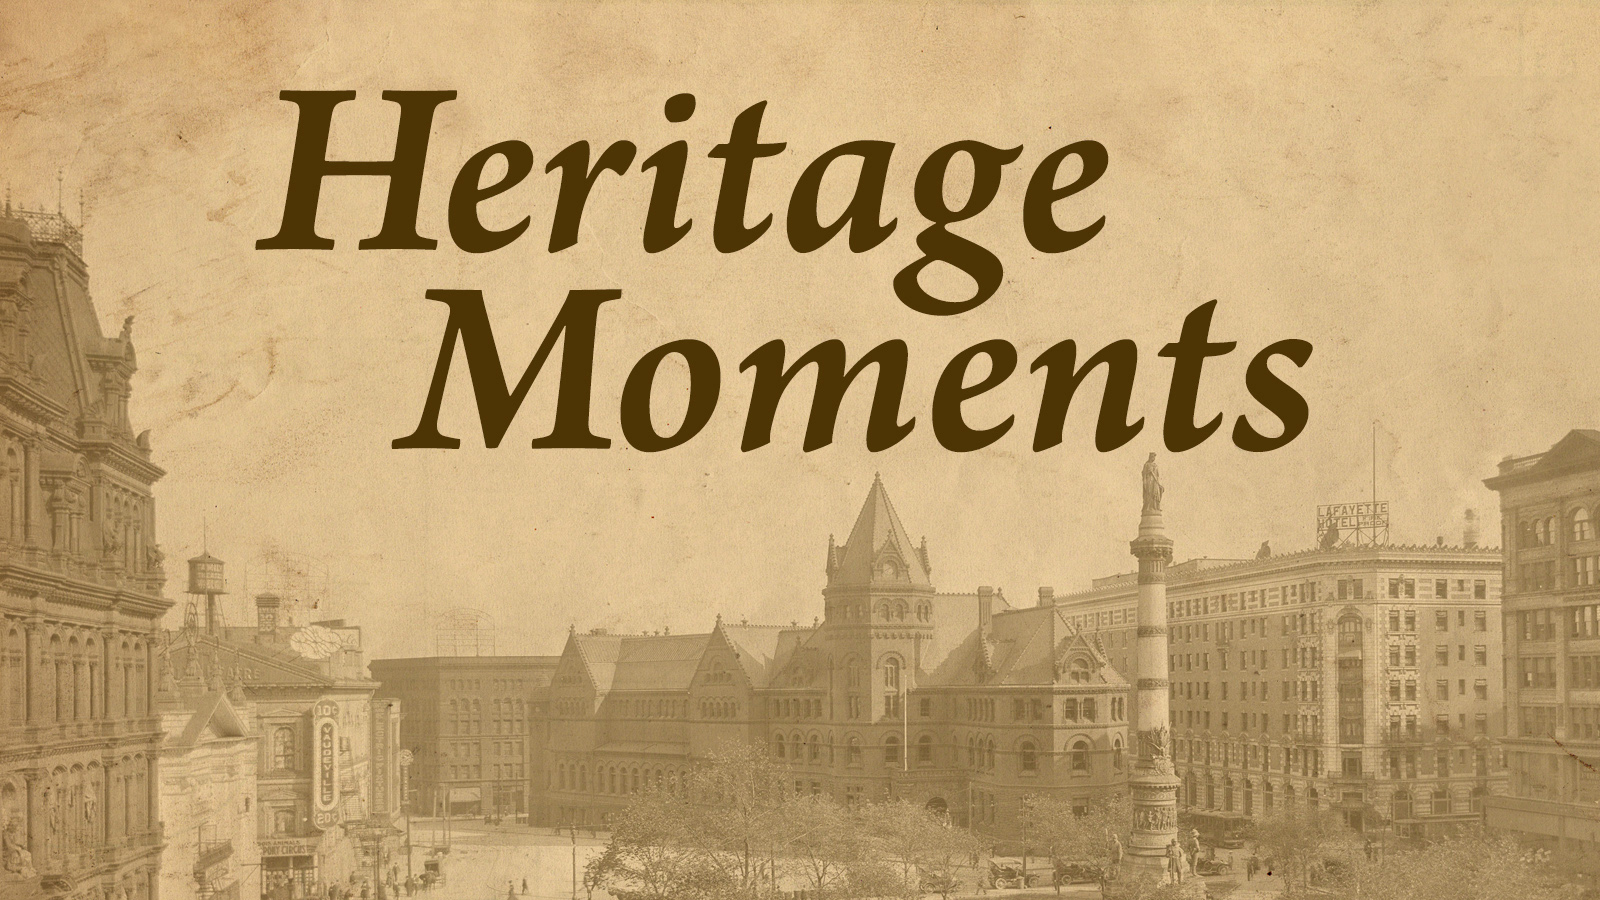 Heritage Moments